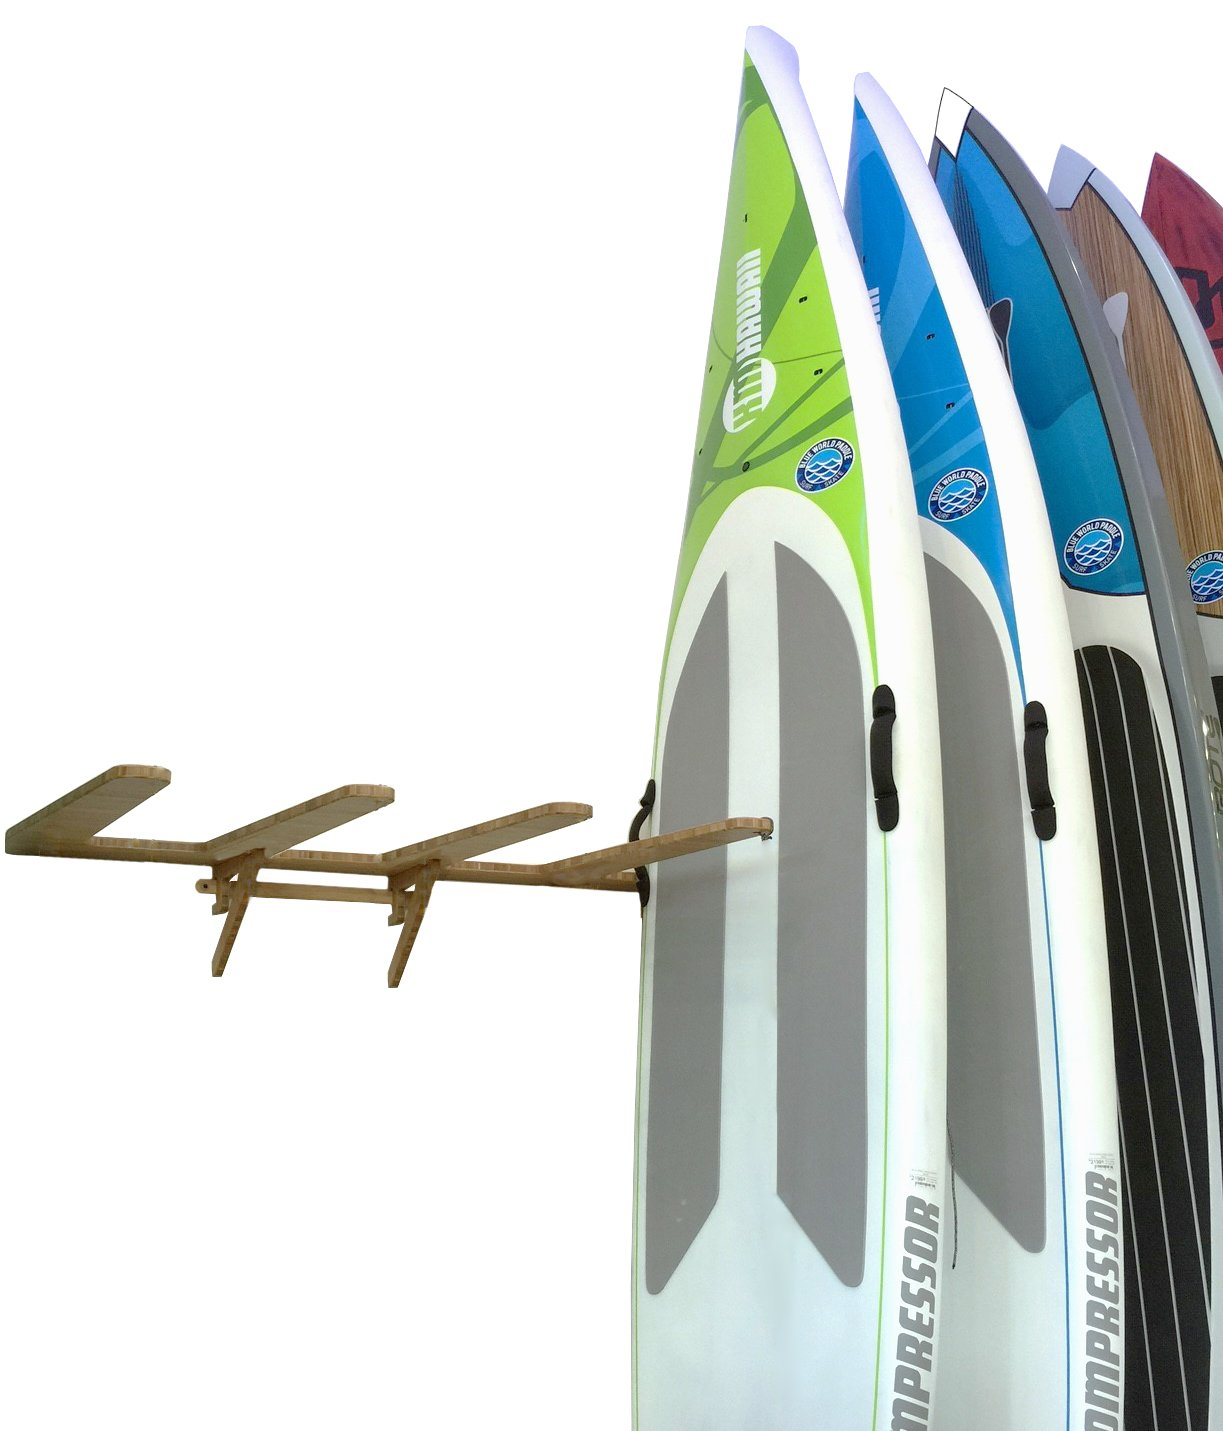 Bamboo Vertical Wall-Mounted SUP Rack for 4 Paddleboards or Surfboards - Grassracks